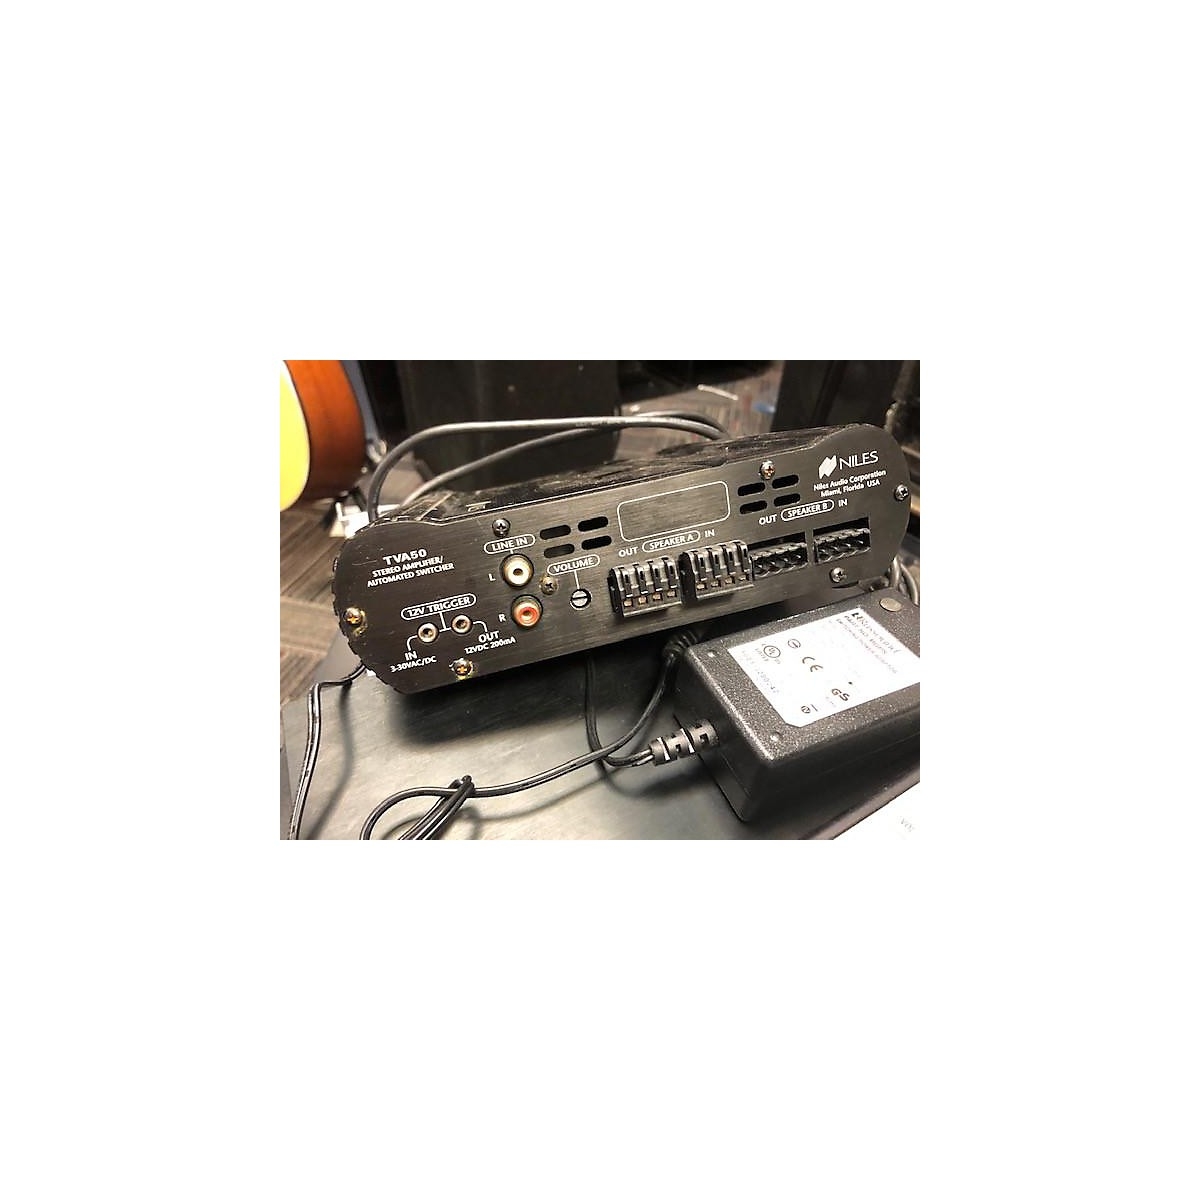 In Store Used Used Niles Tva50 Power Amp